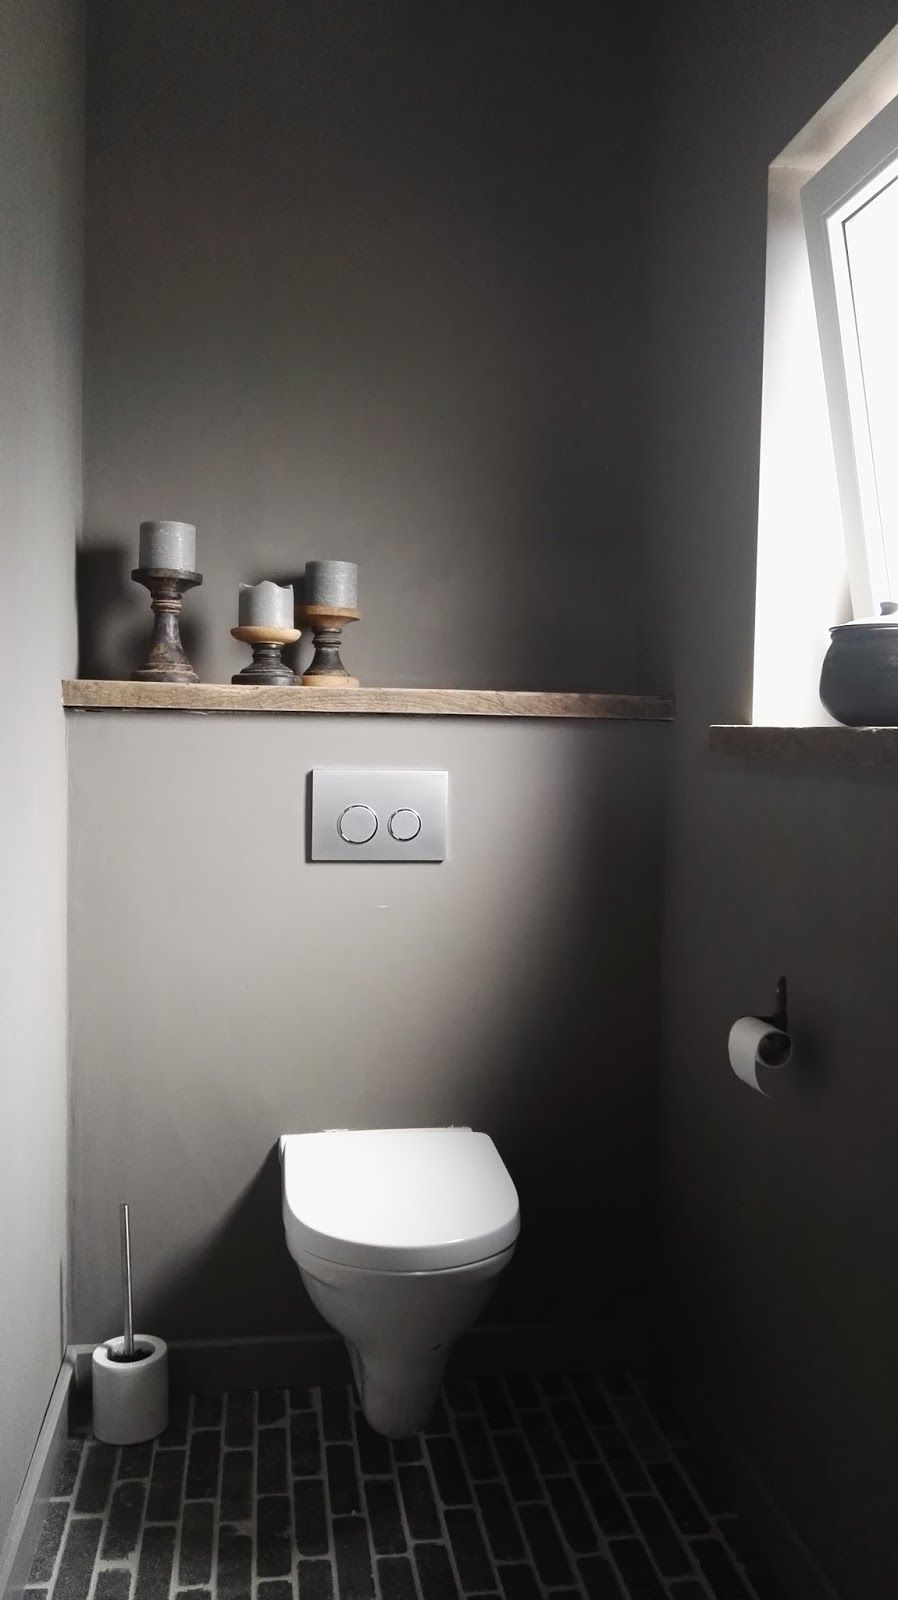 Neues Wc Toilet Judith En Co Blogspot Toilet Badezimmer